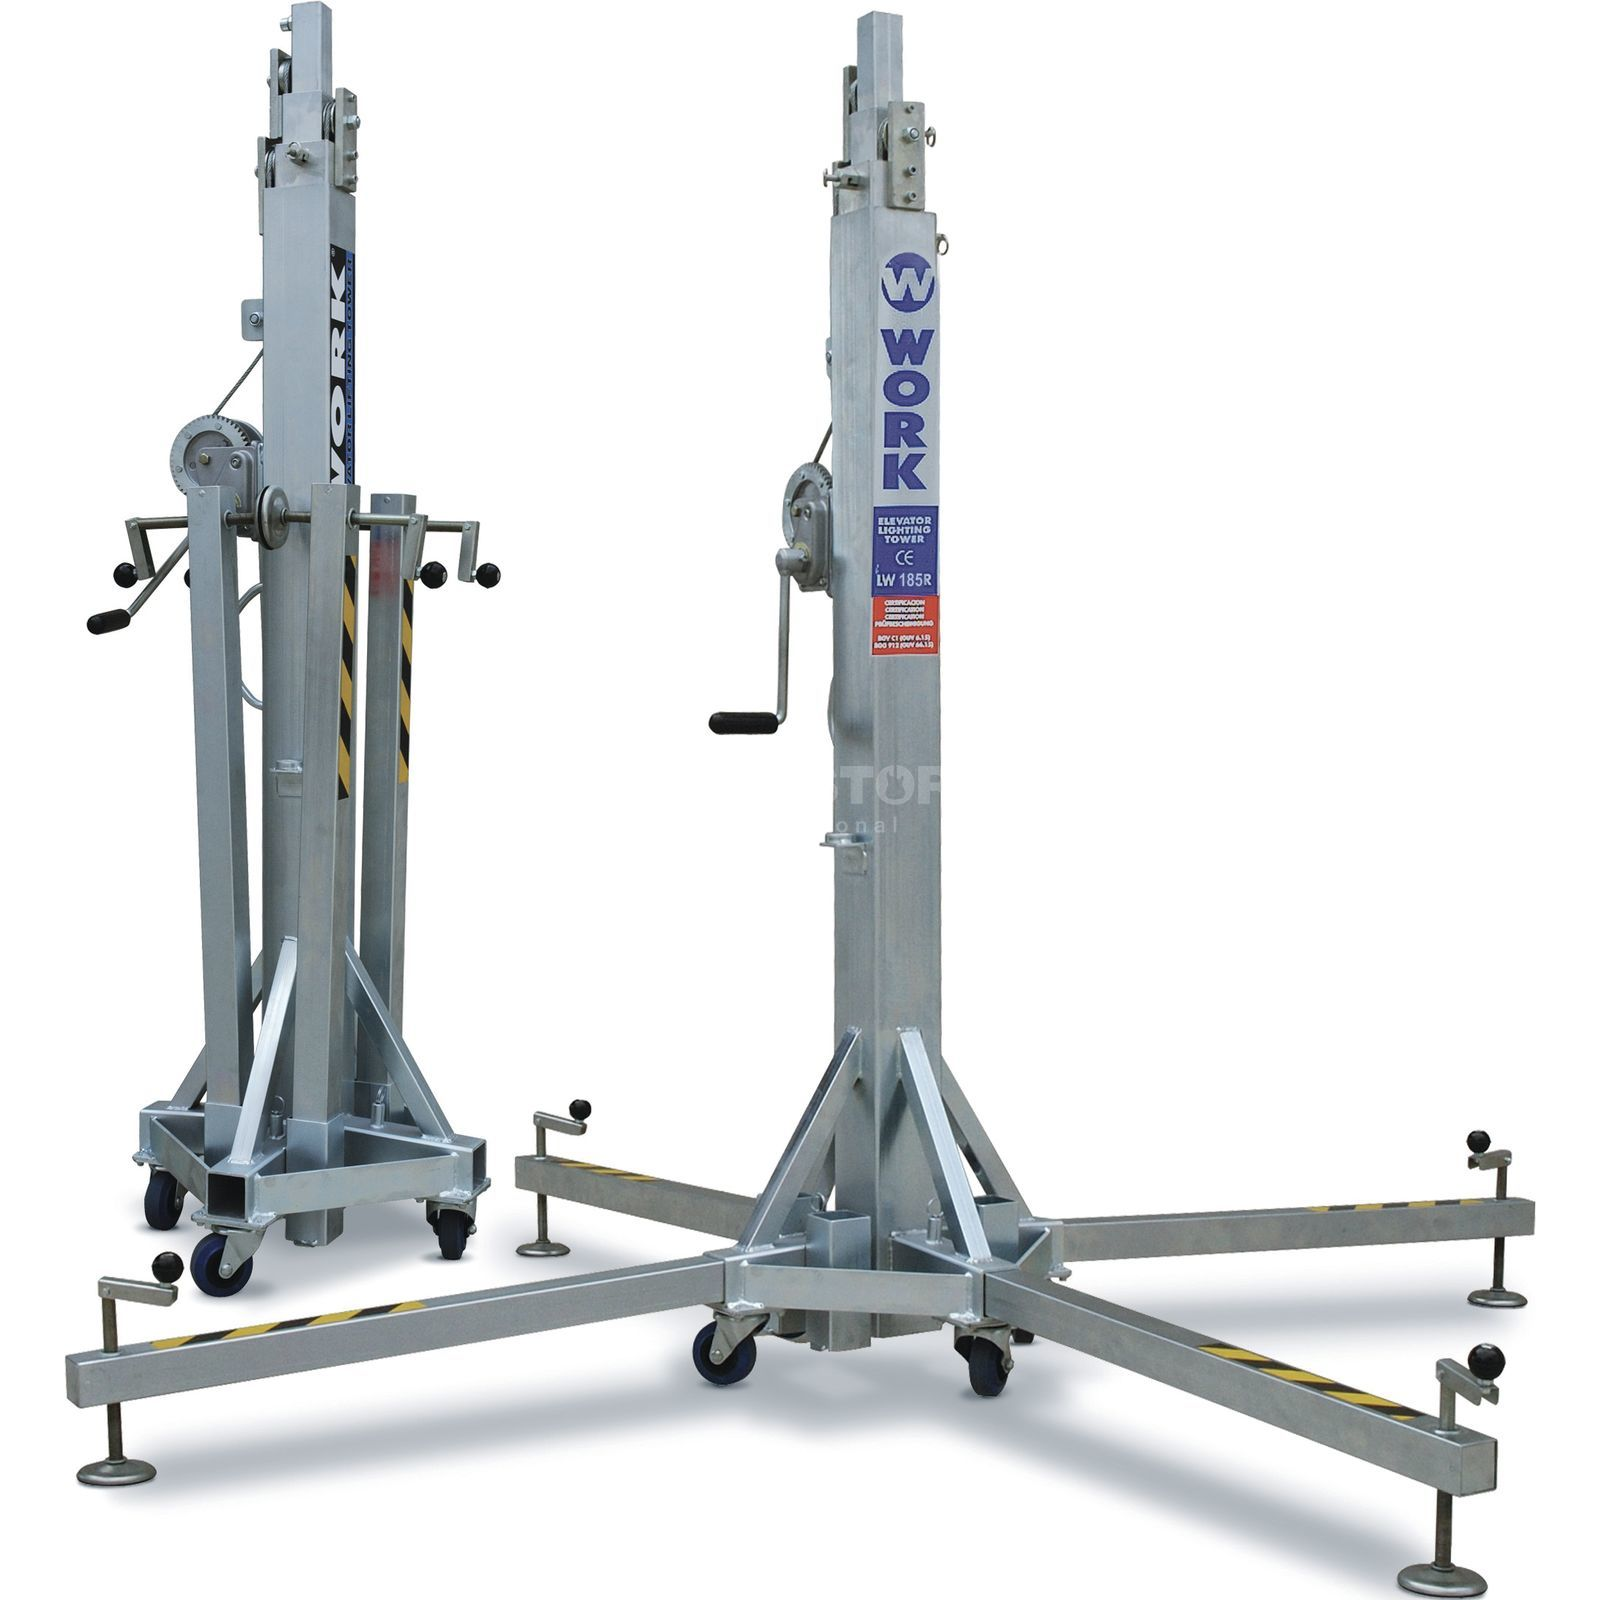 Work Stand LW 185  Product Image